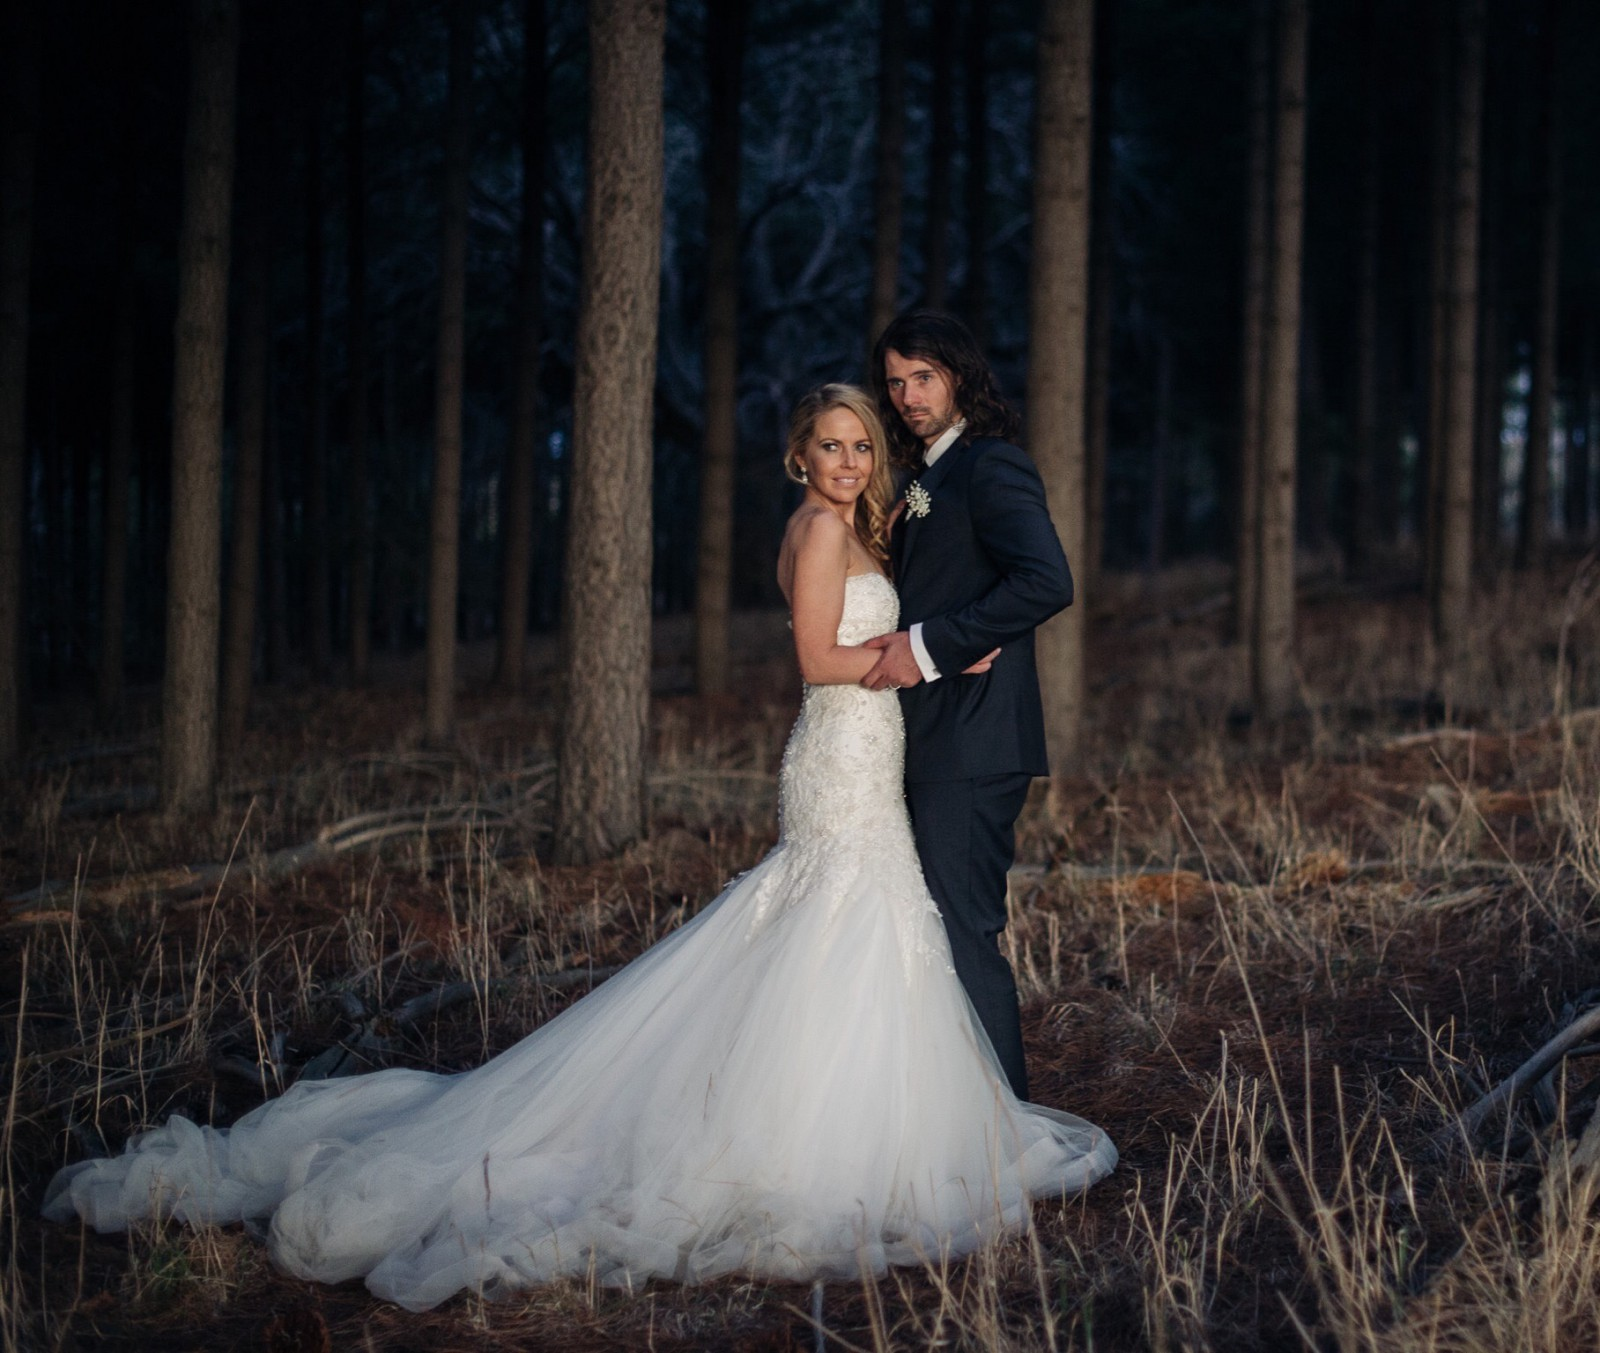 Suzanna blazevic couture used wedding dresses stillwhite for Suzanna blazevic wedding dresses